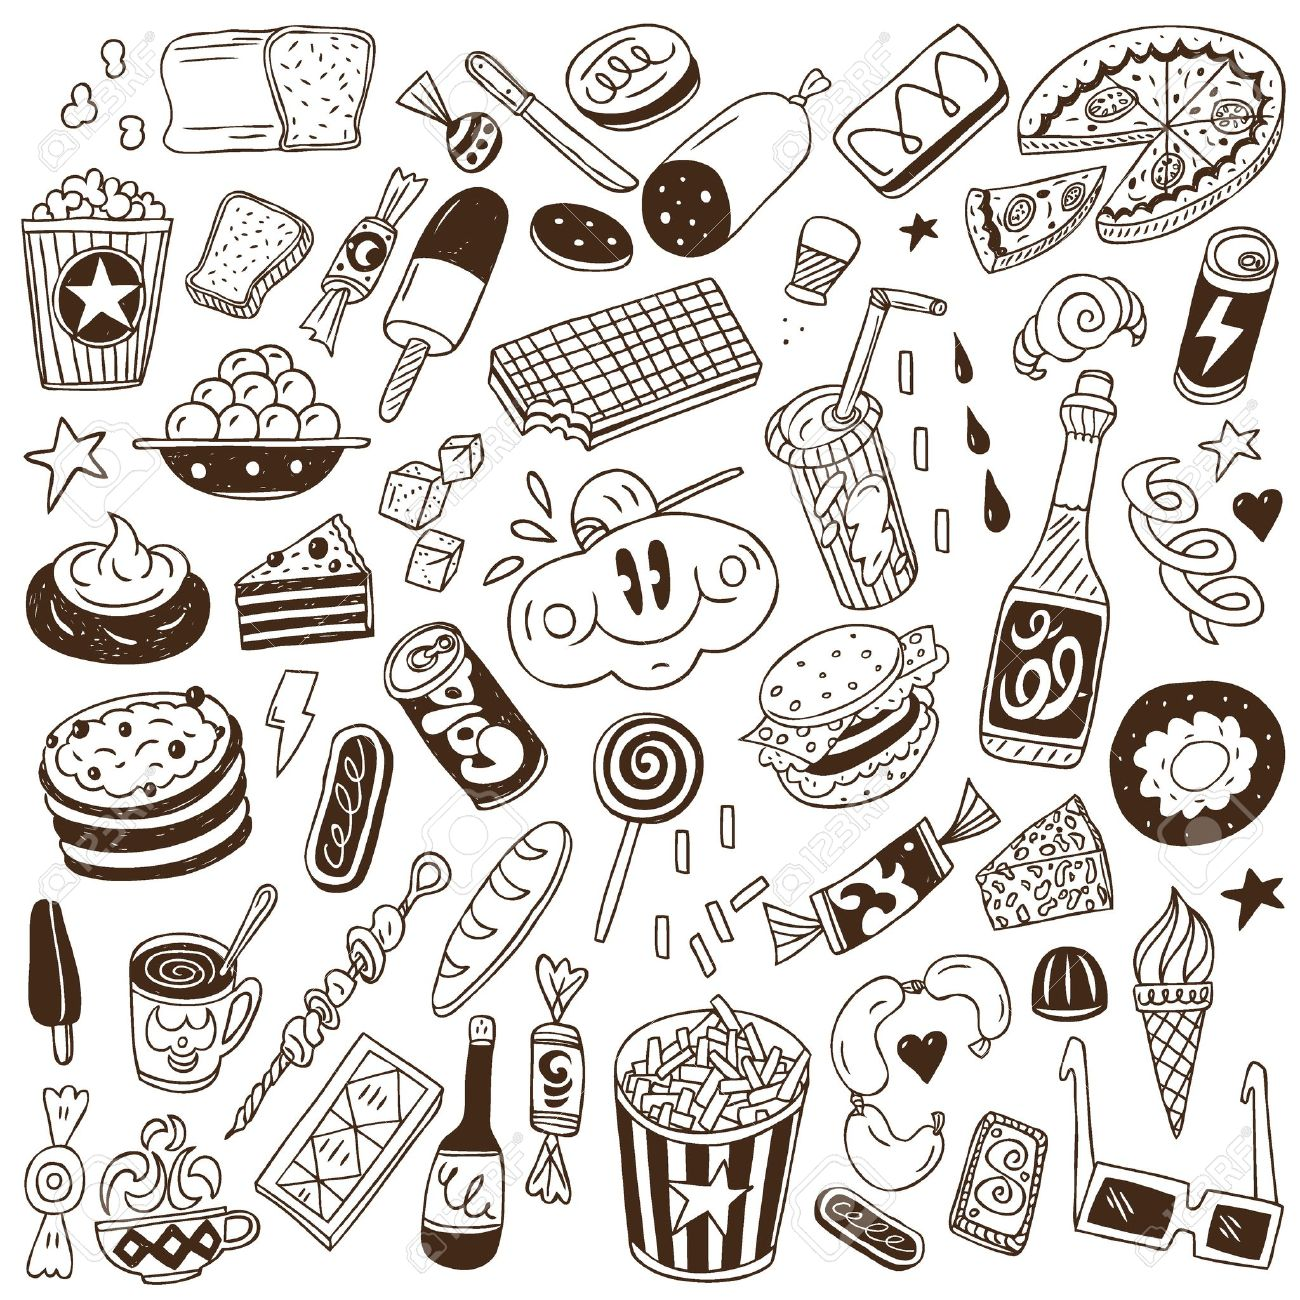 fast food - doodles Stock Vector - 20674554